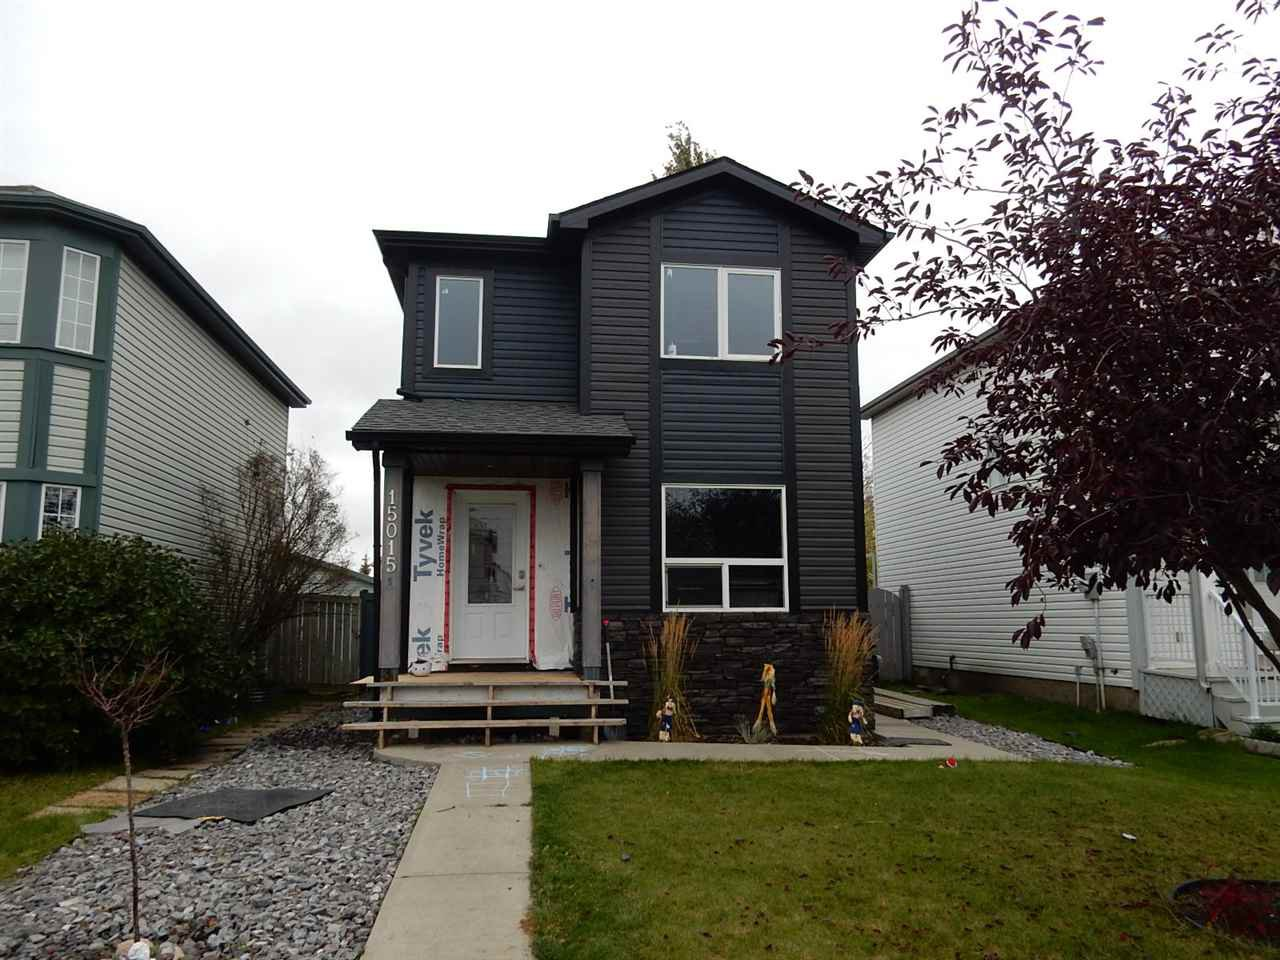 Main Photo: 15015 132 Street in Edmonton: Zone 27 House for sale : MLS®# E4176425